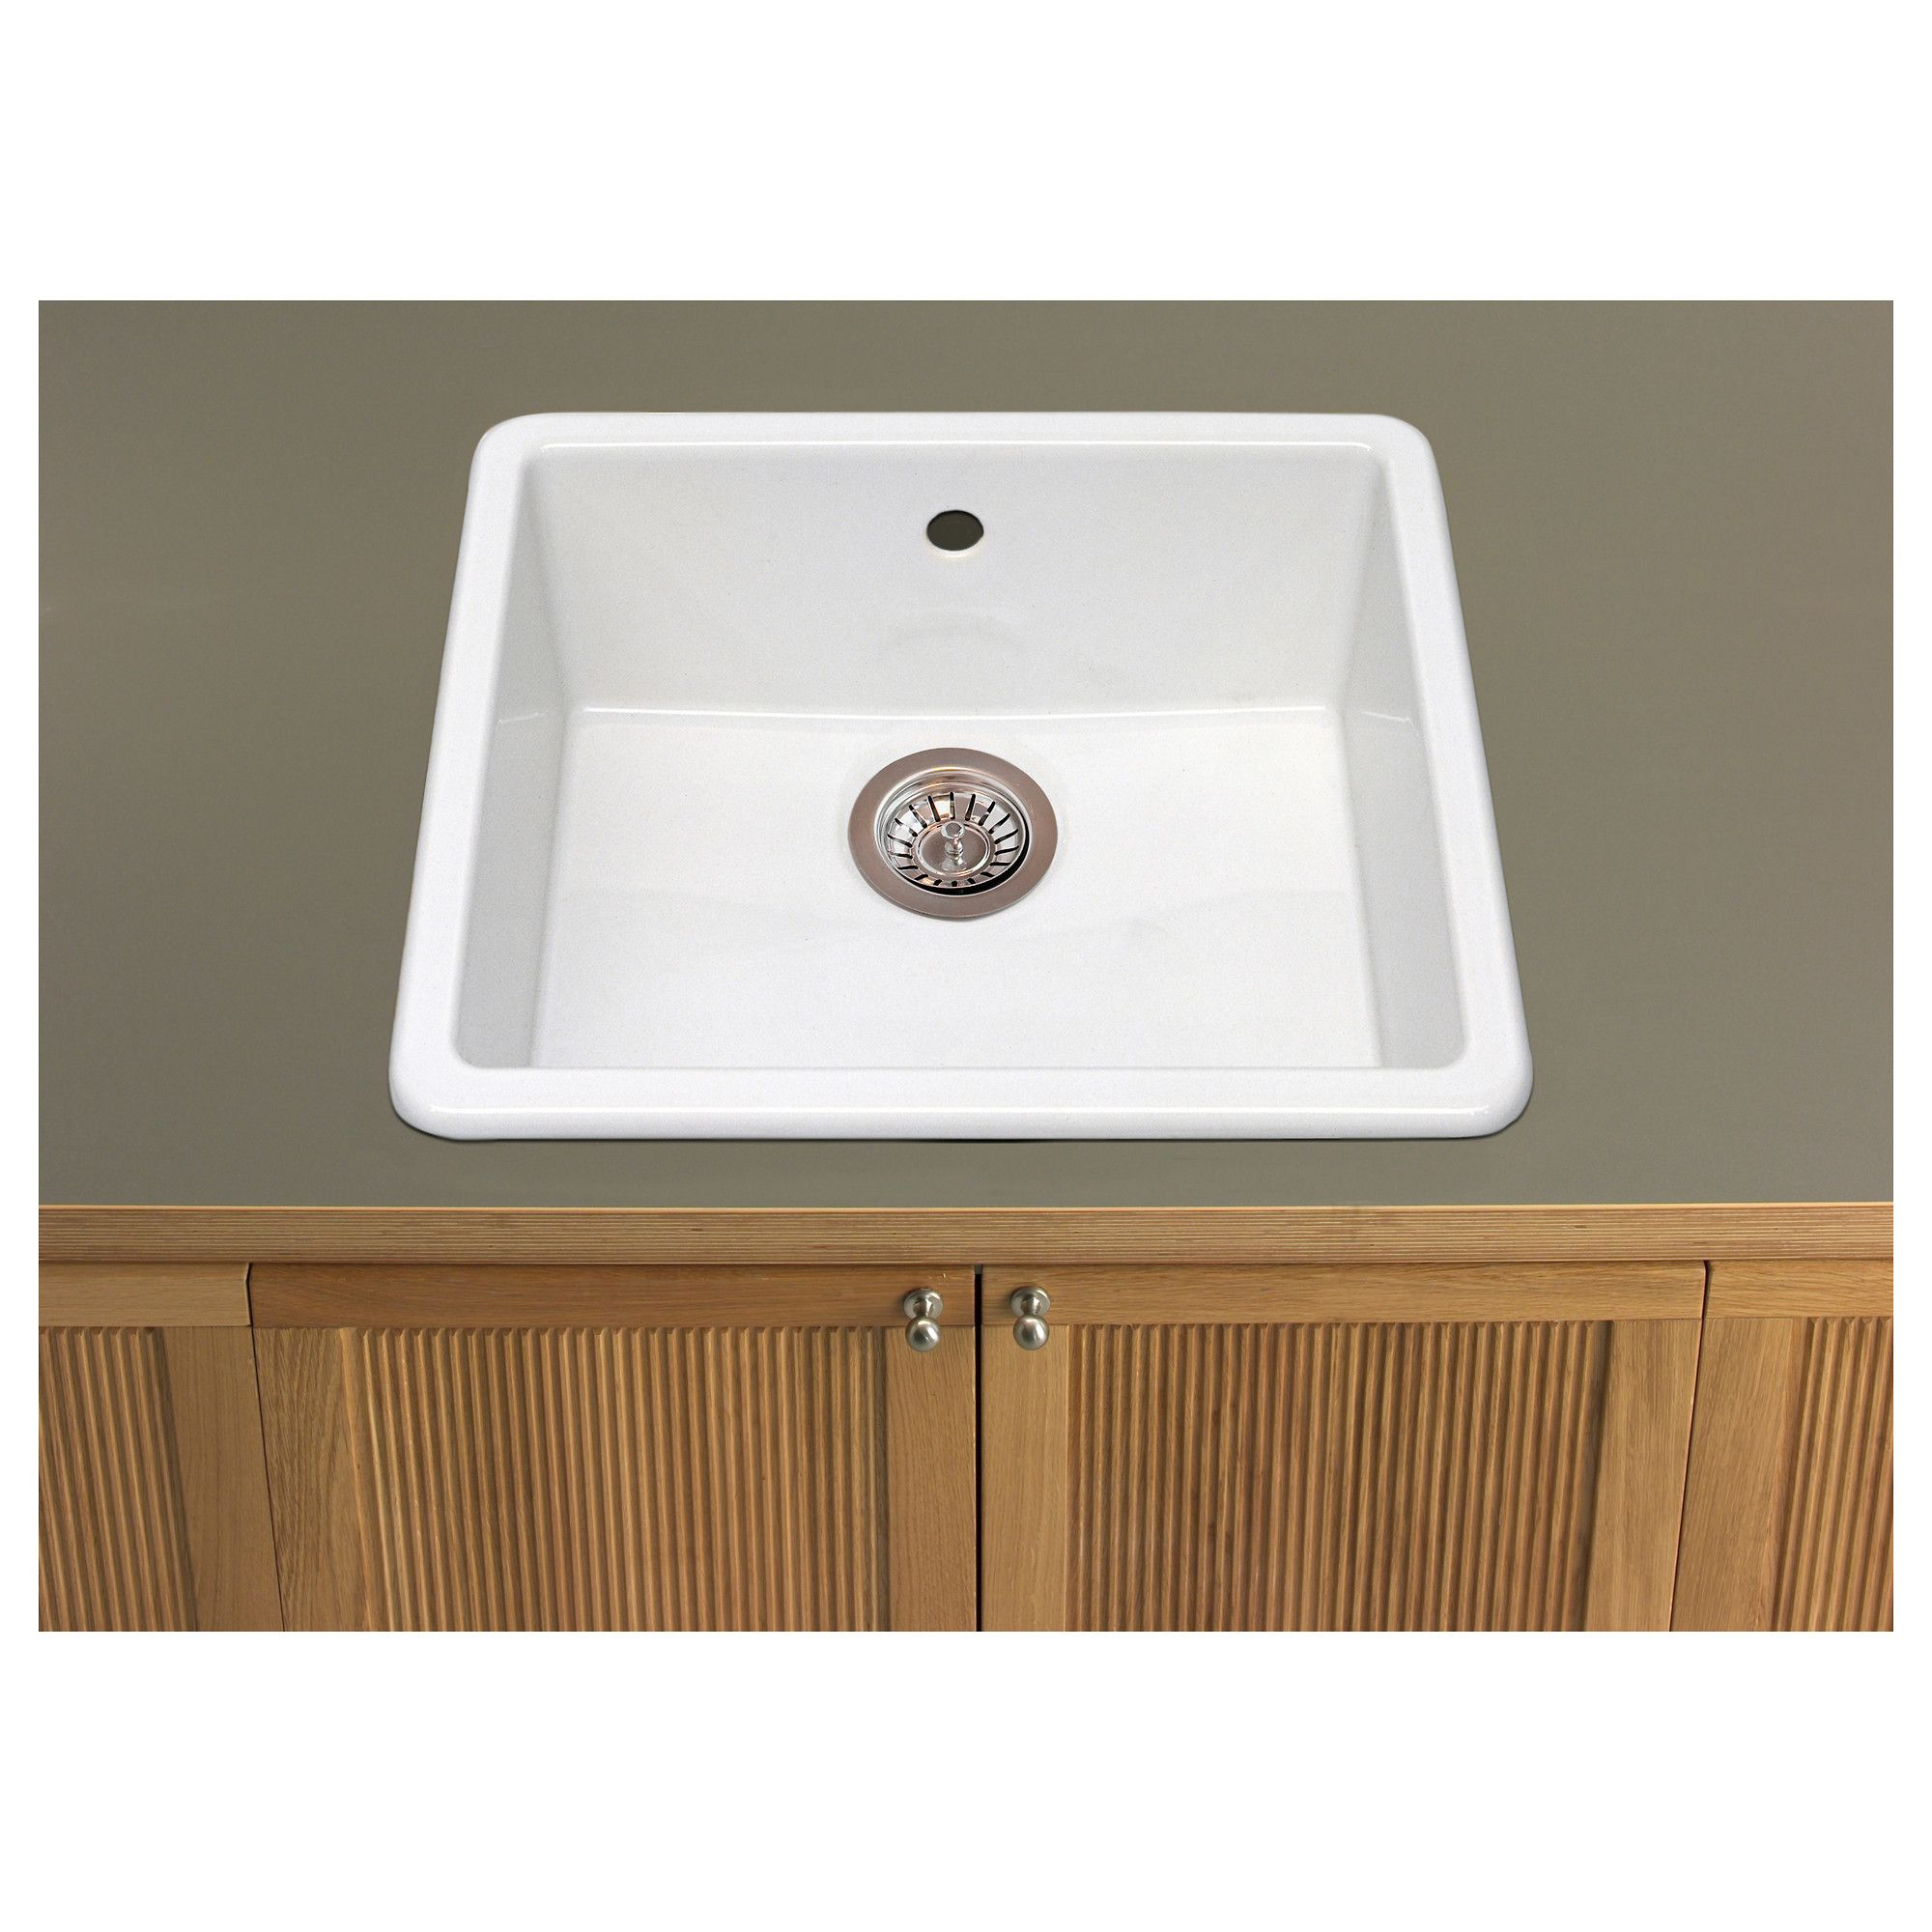 Dream Kitchen Sink: DOMSJÖ Single-bowl Inset Sink